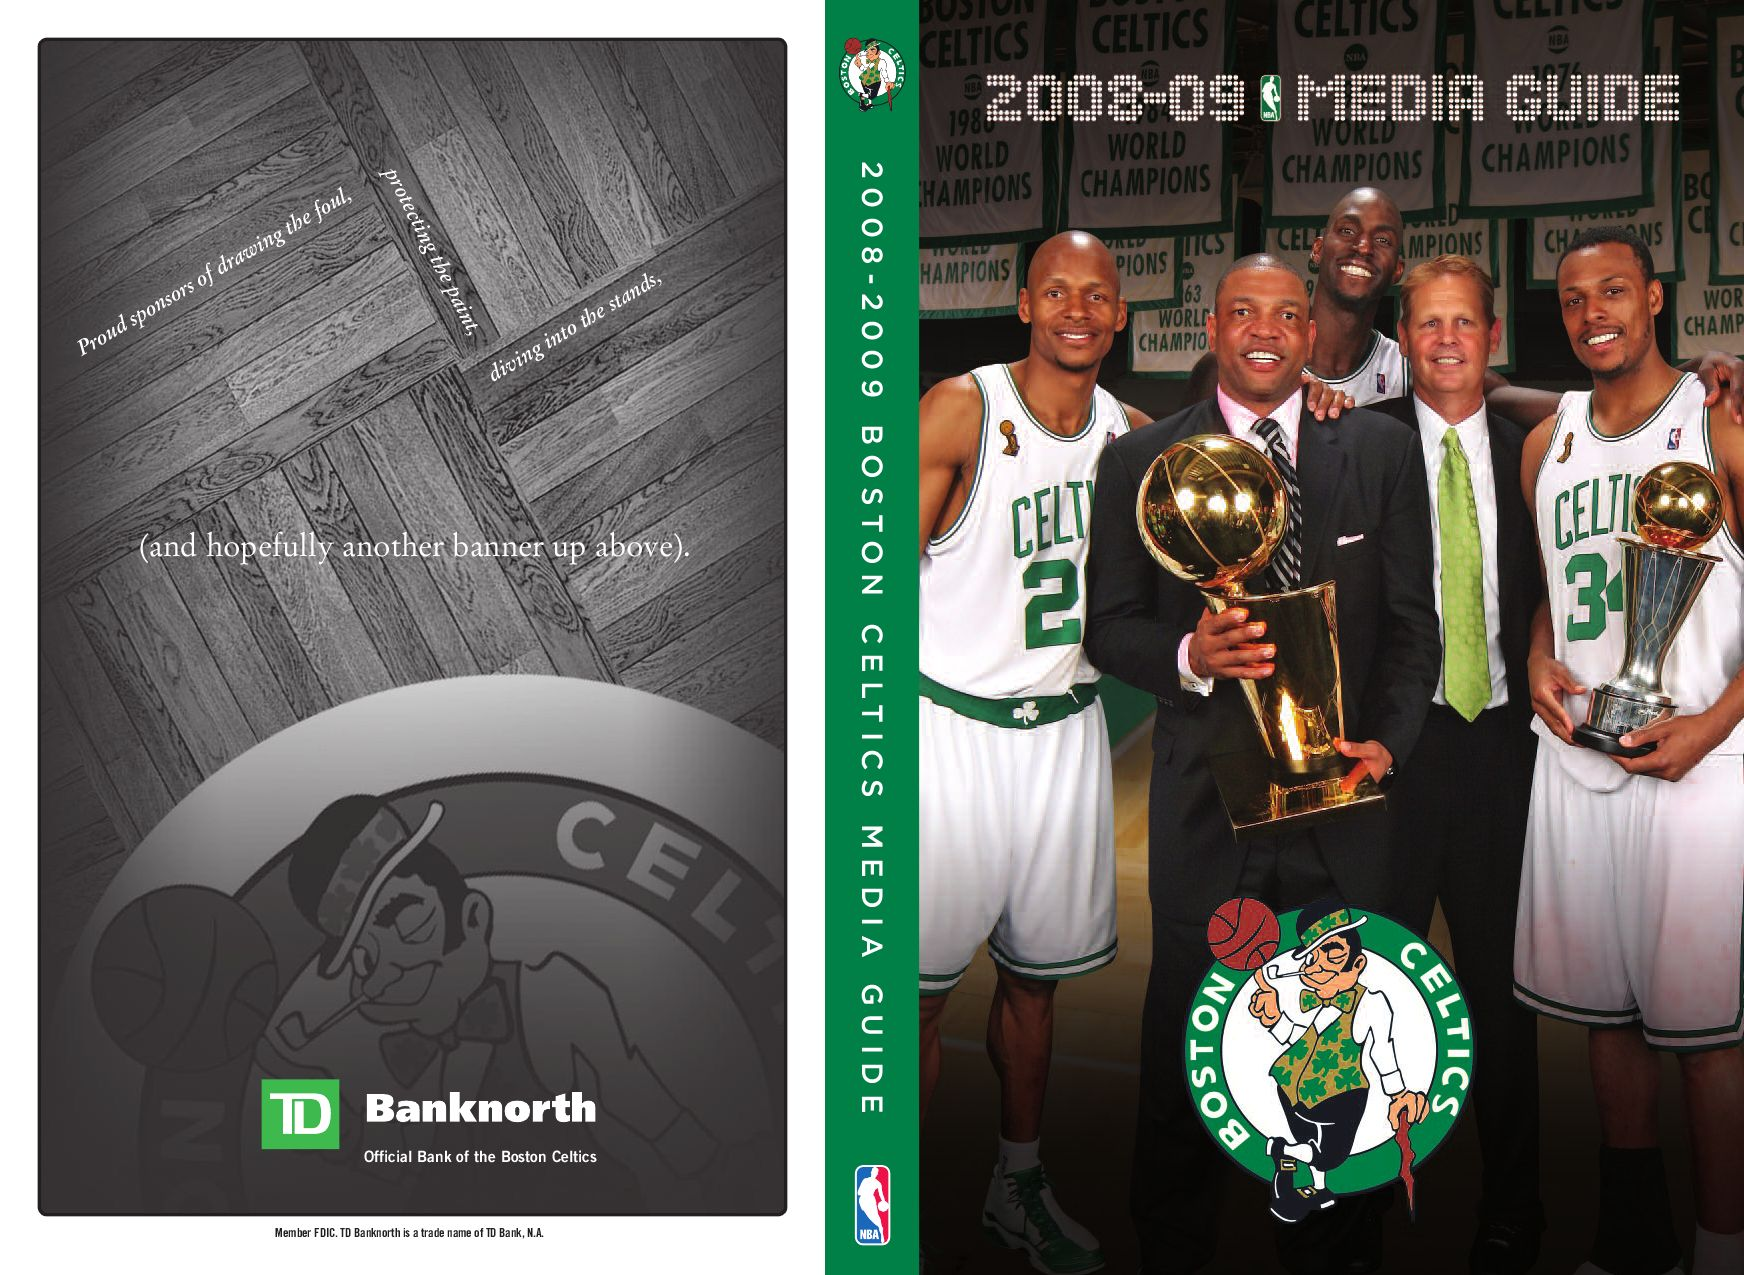 a5d5e5f804b Celtics Media Guide 0809 by crisvale tirodetres - issuu